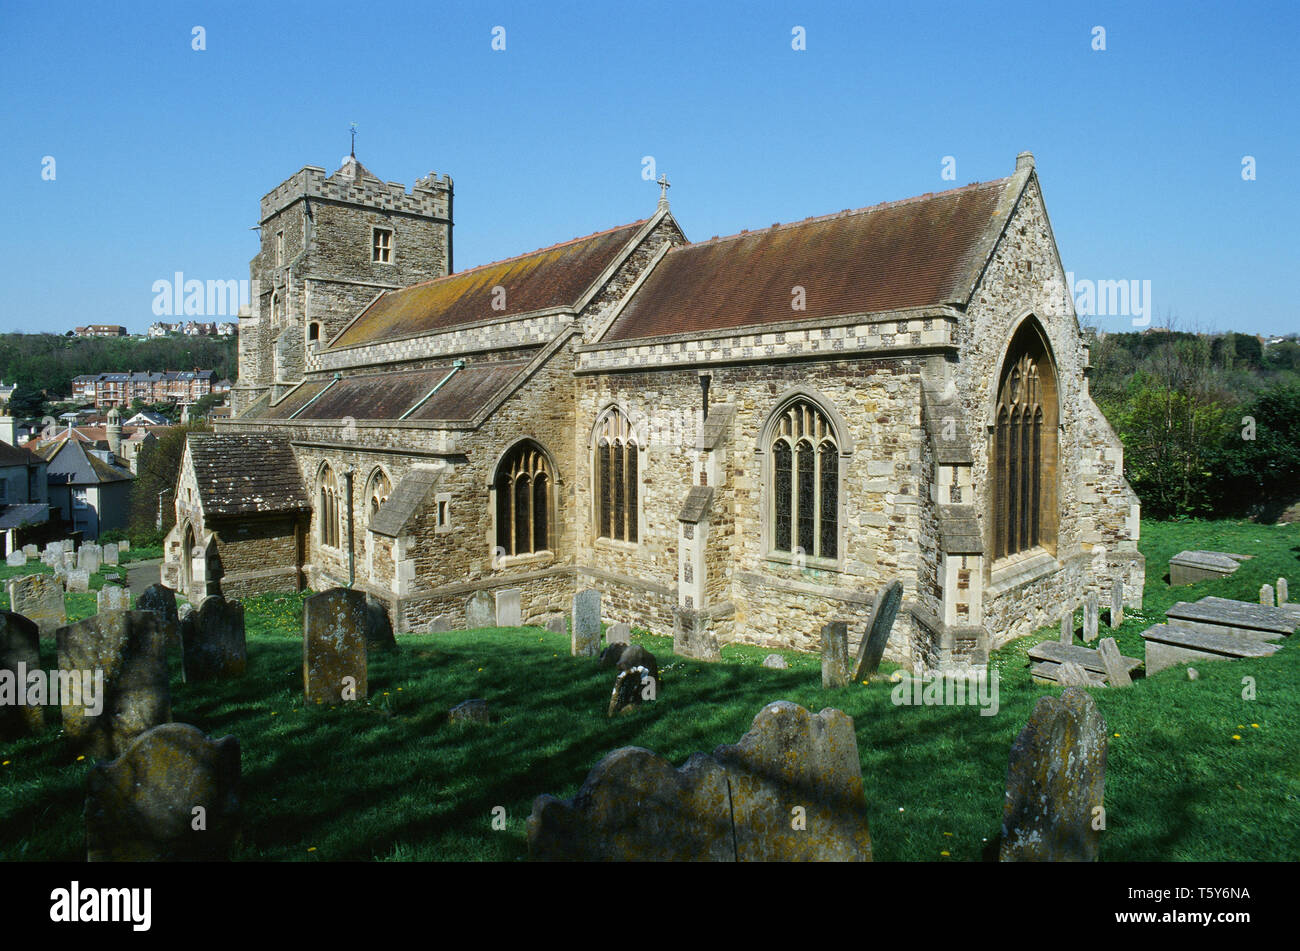 The historic 15th century church of All Saints in Hastings Old Town, East Sussex, UK - Stock Image